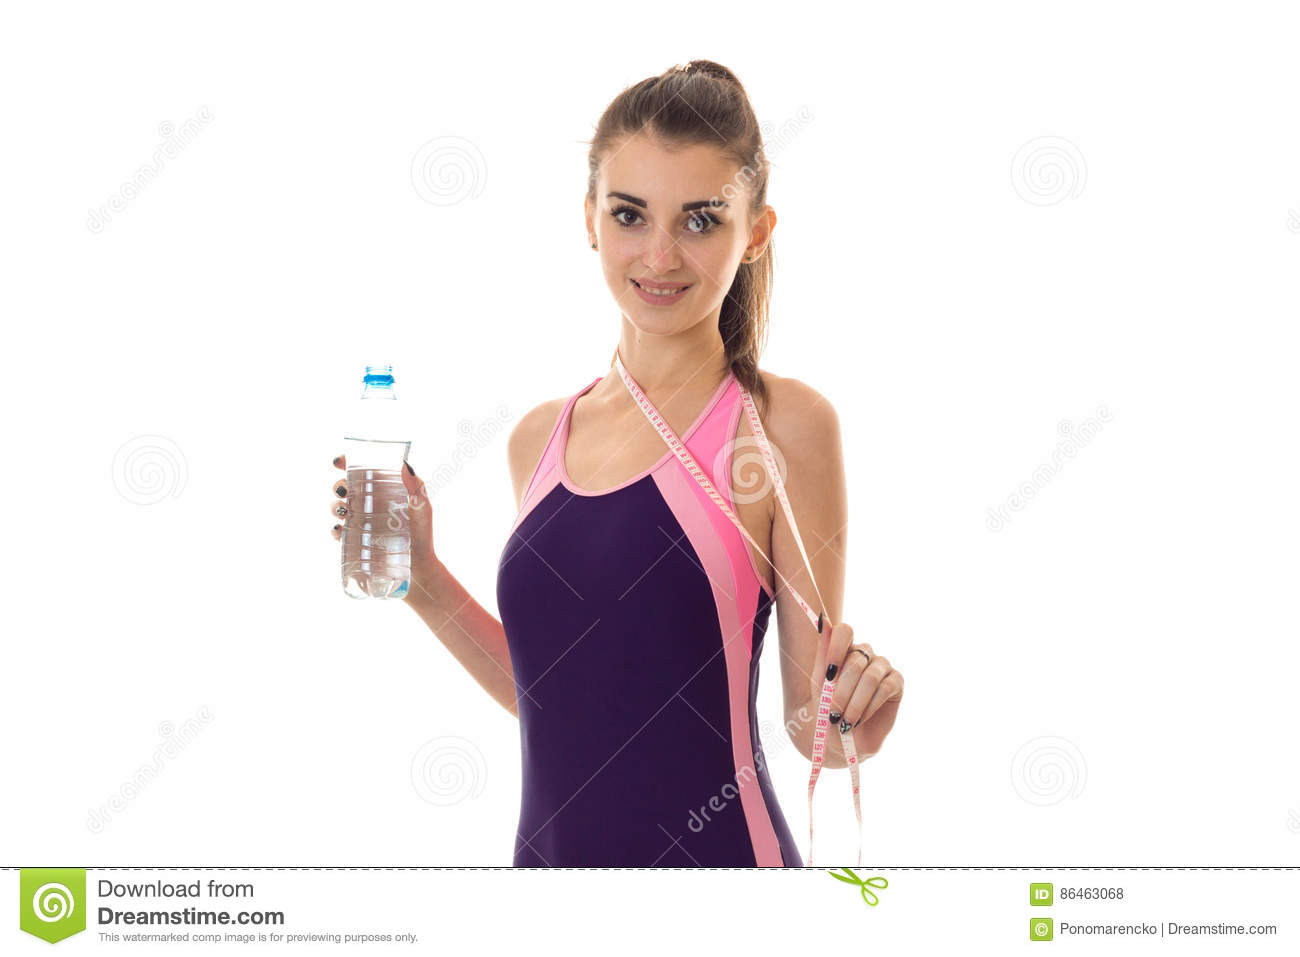 young woman with bottle water and measure tape in magenta body swimsuit  smiling on camera isolated on white.